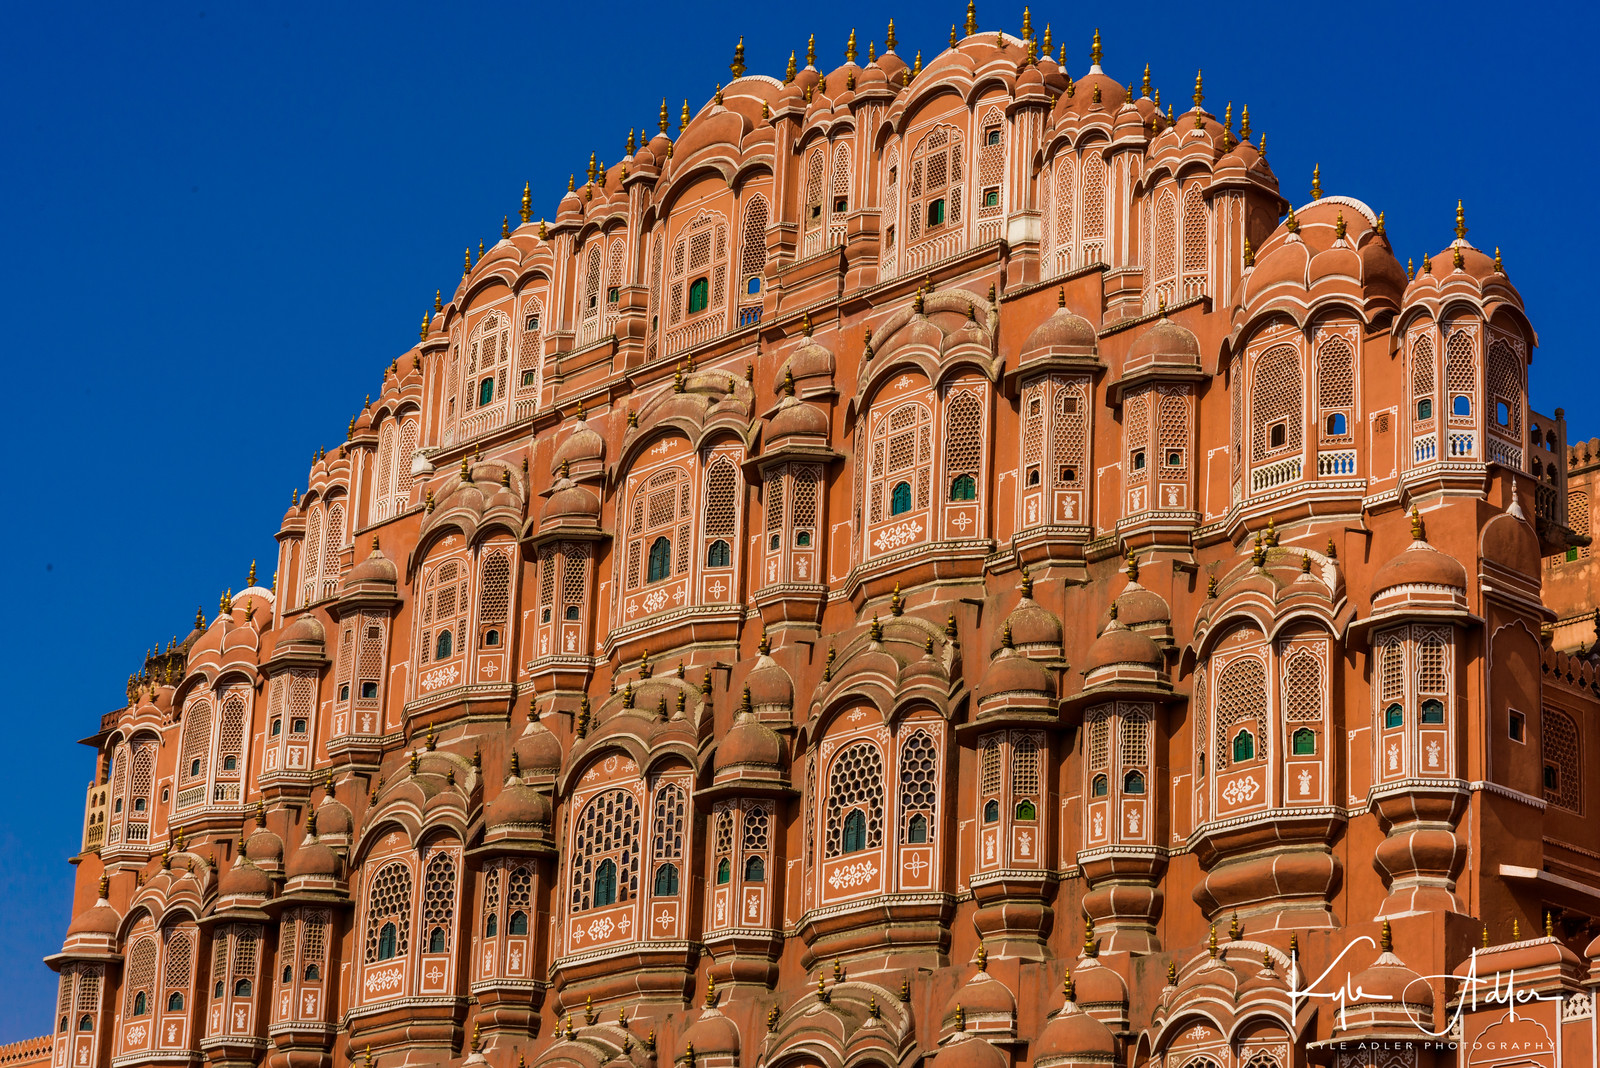 Jaipur's landmark Palace of the Winds provided nearly 1000 windows through which the women of the court could look down on the streets below.